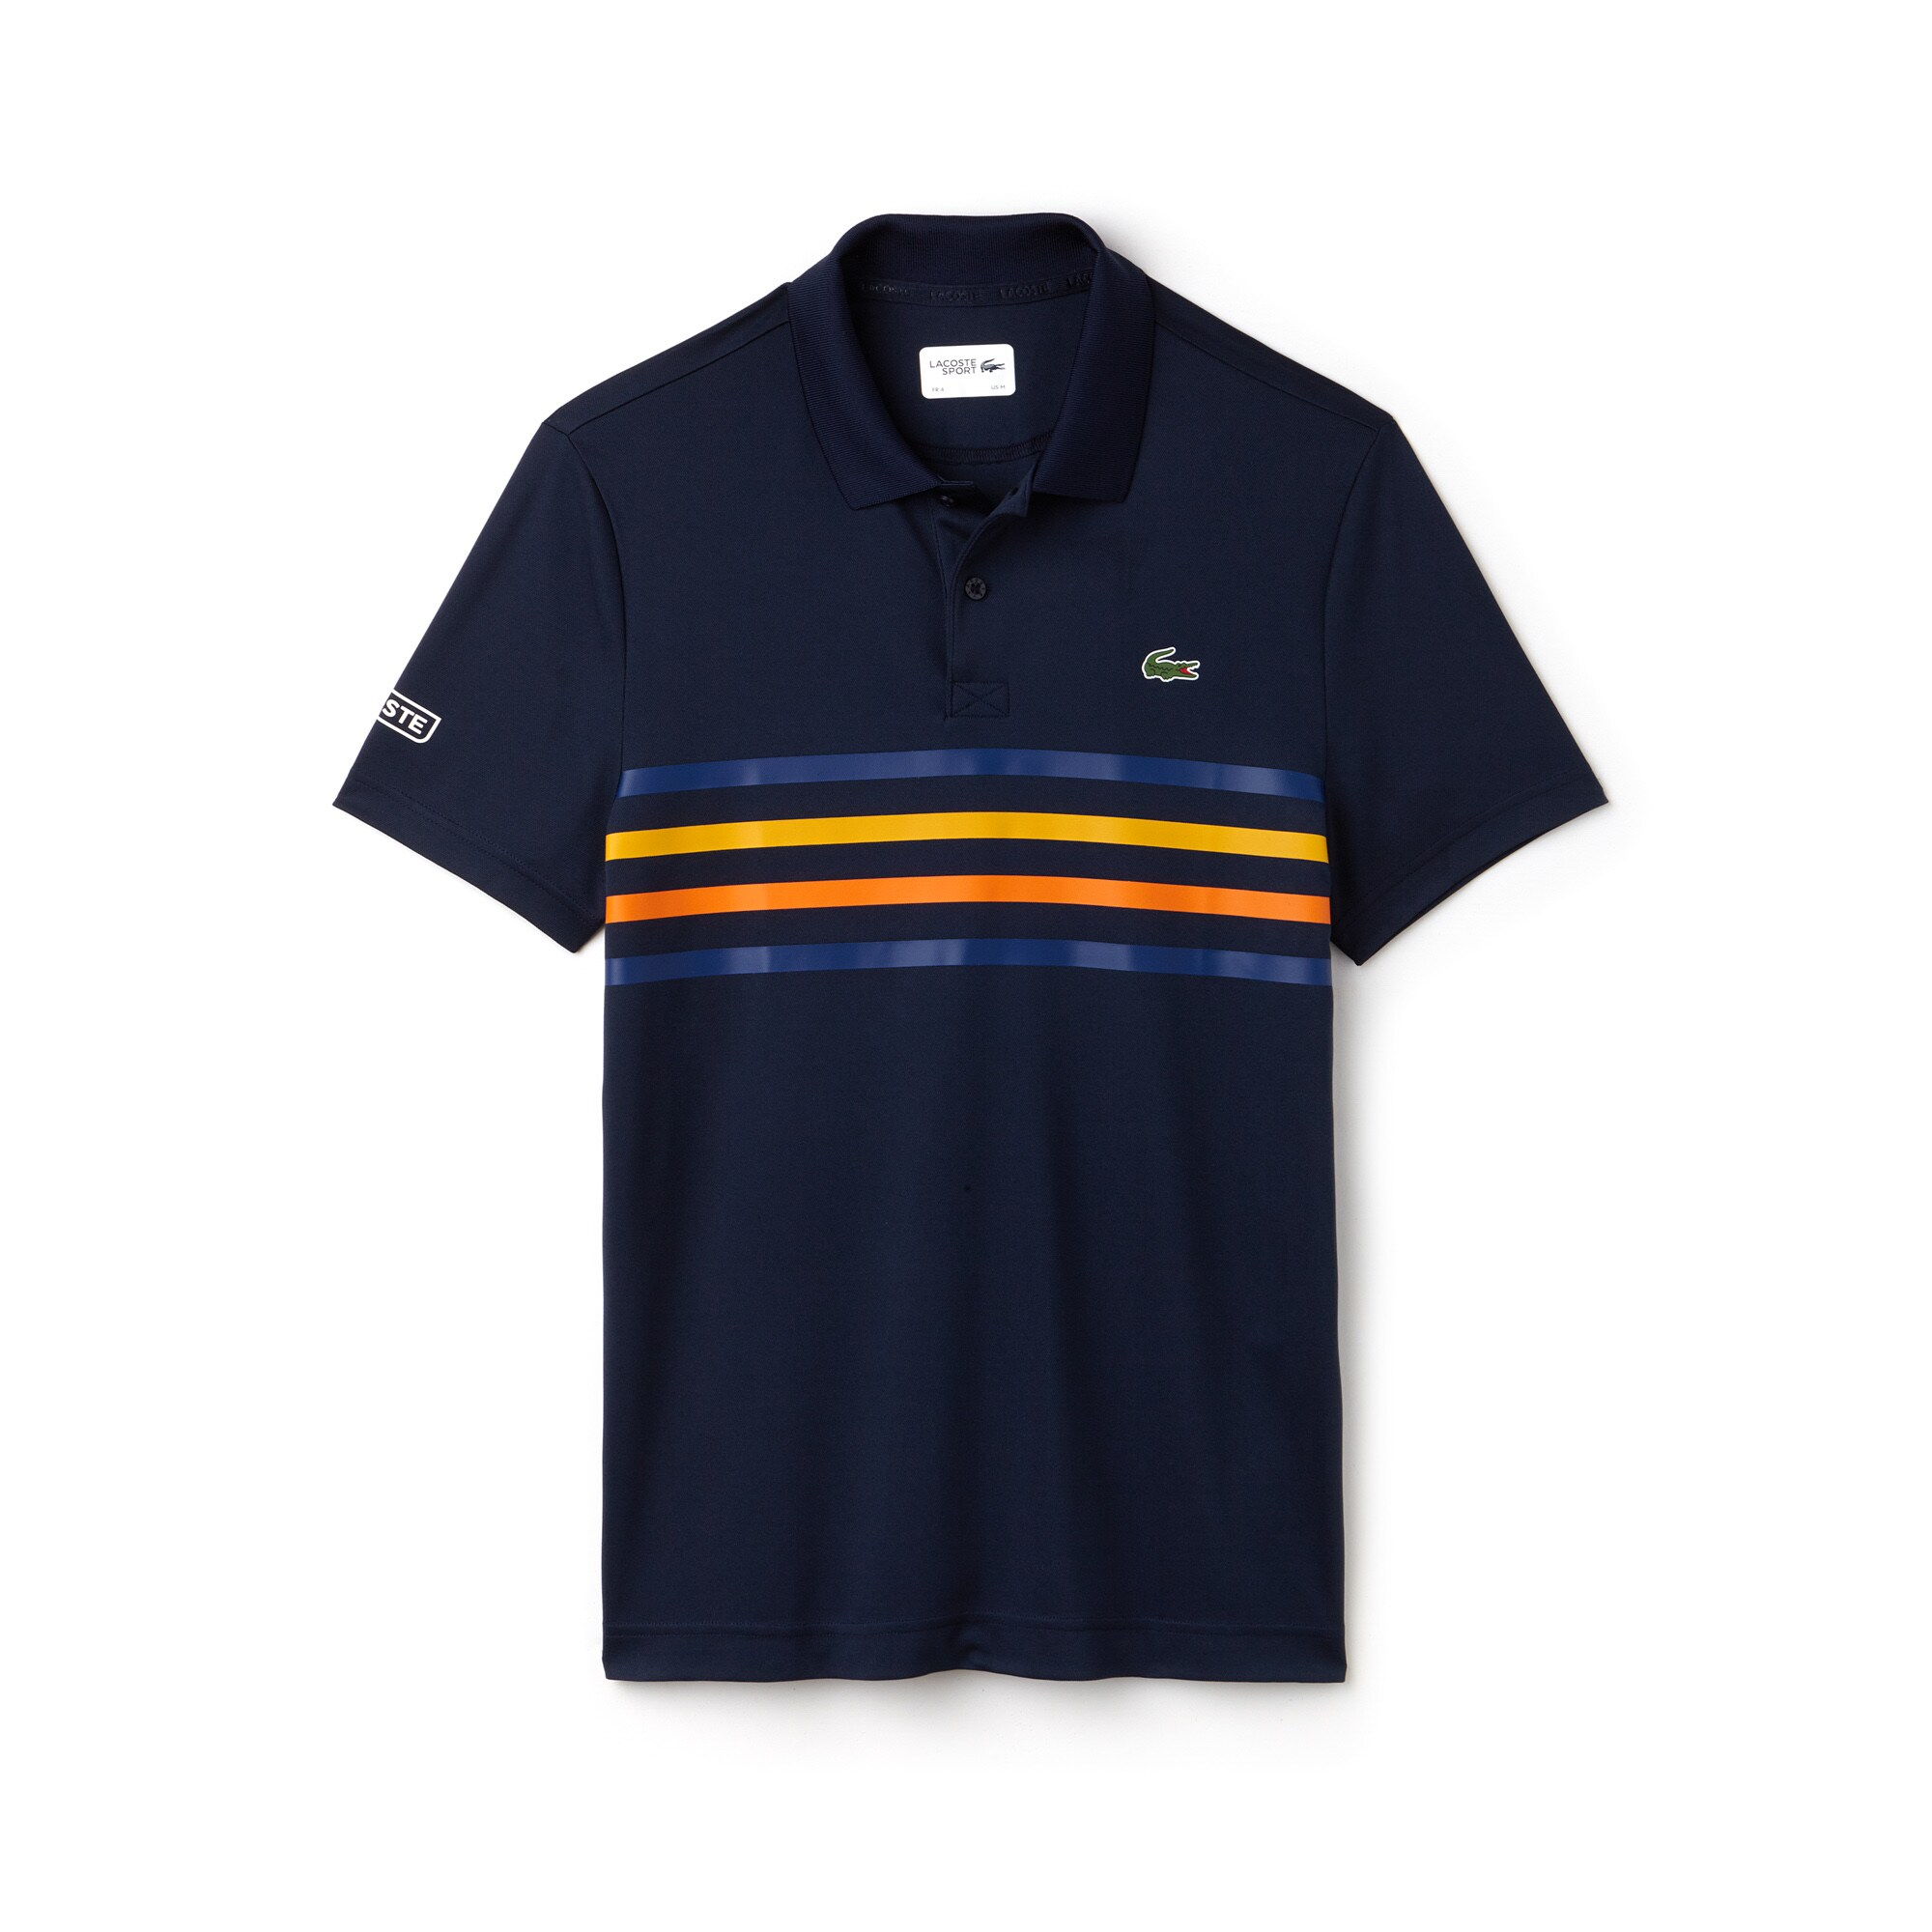 Men's Lacoste SPORT Colored Bands Technical Piqué Tennis Polo Shirt